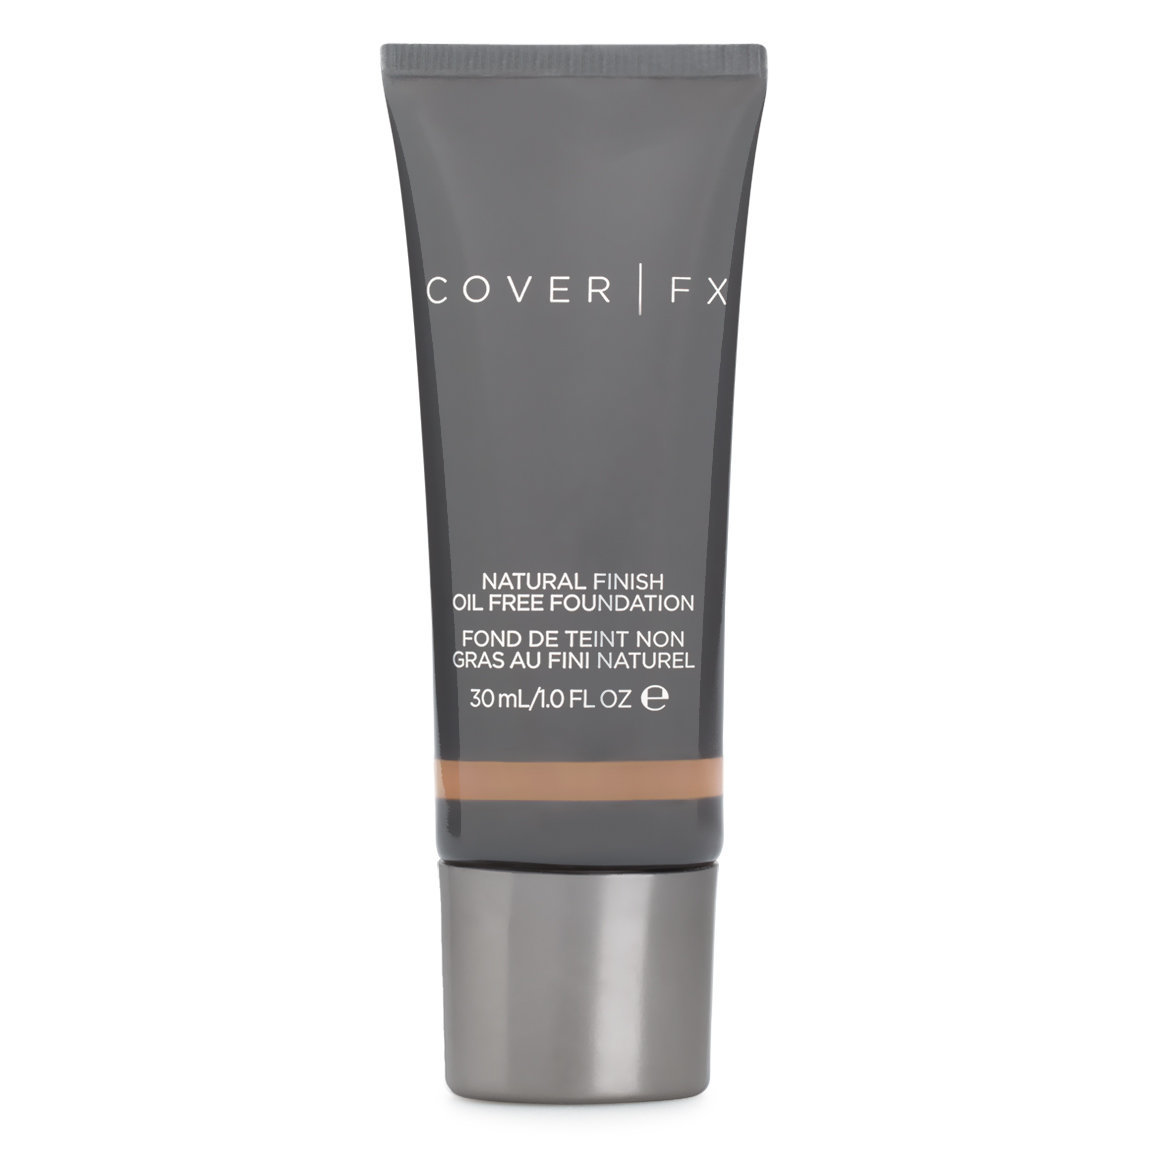 Cover Fx Natural Finish Oil Free Foundation G